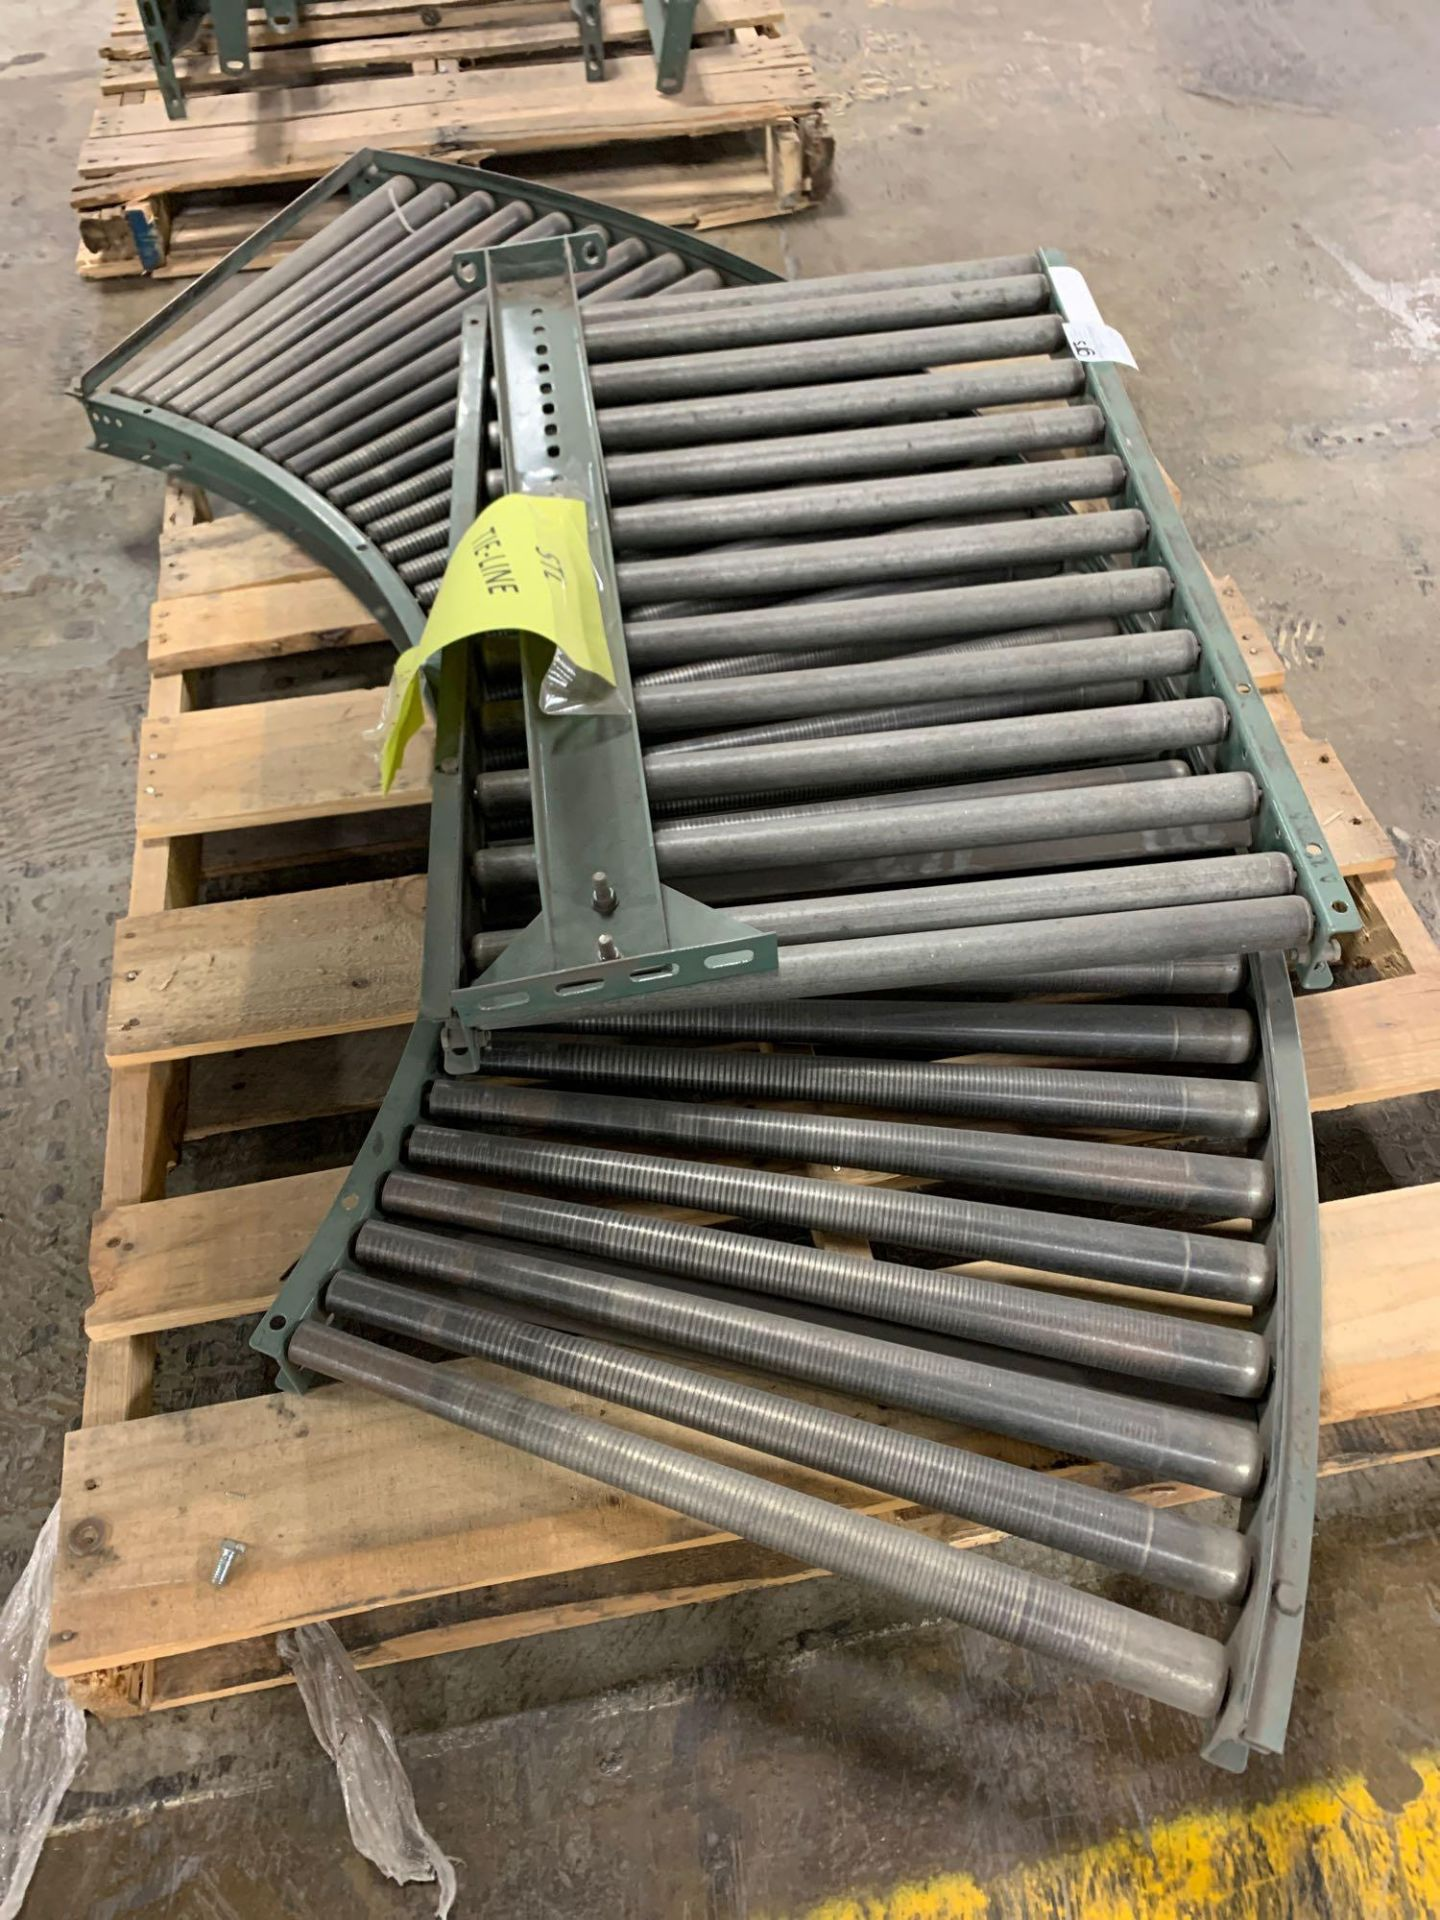 Pallet of (2) Conveyor Extension Pieces - Image 2 of 2